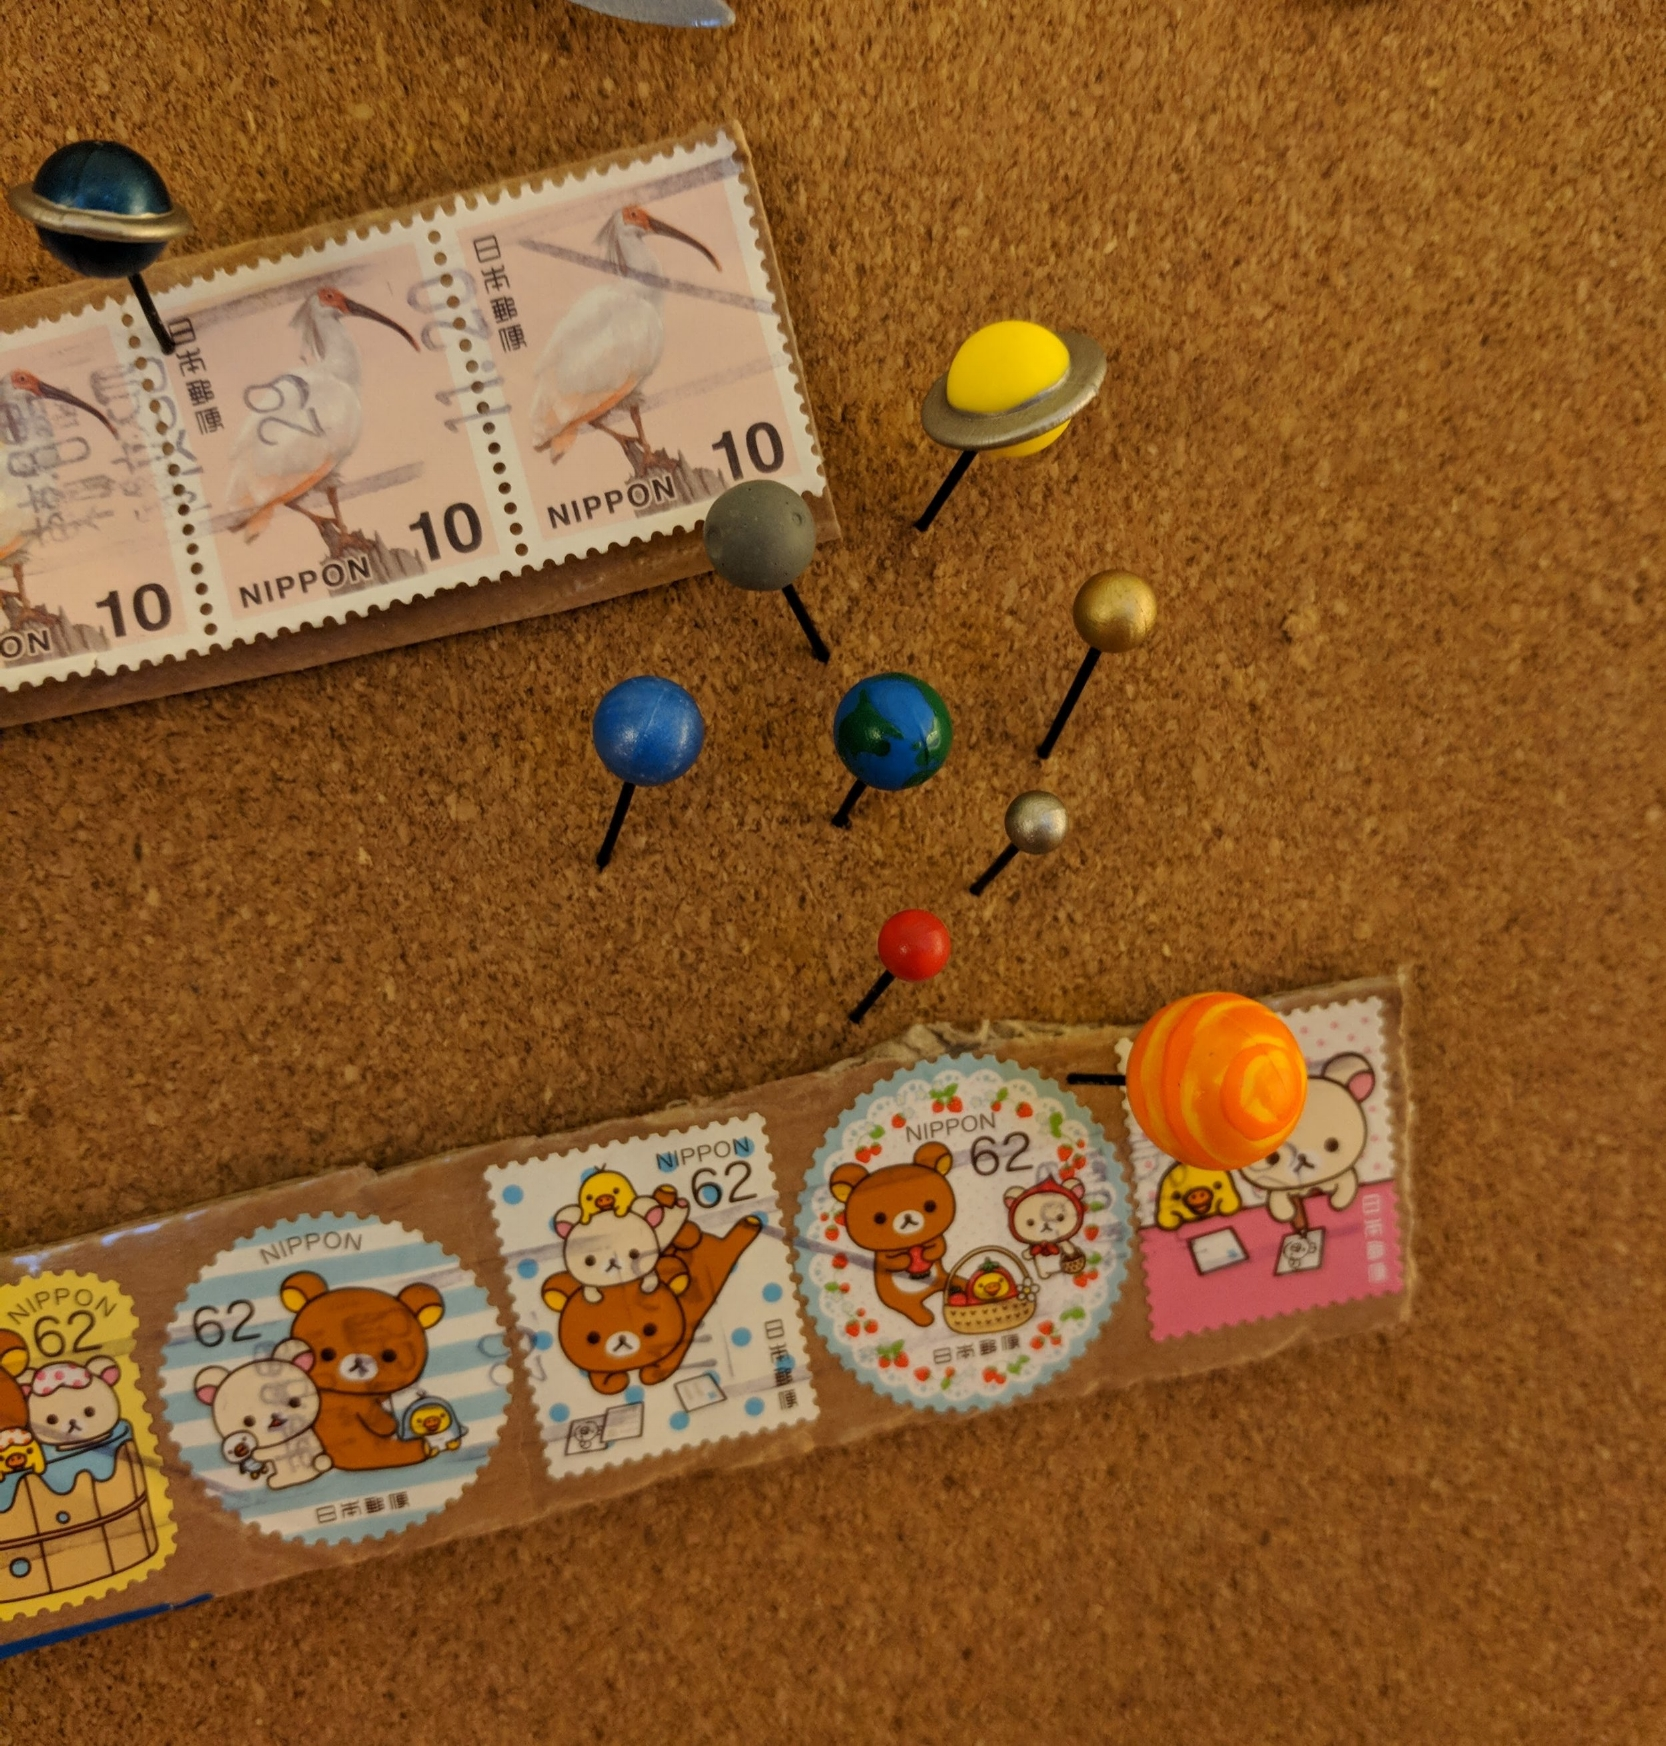 Planet Push Pins  (and the  Moon Push Pin  - not to scale) in action, with the stamps that carried my order from Tokyo!